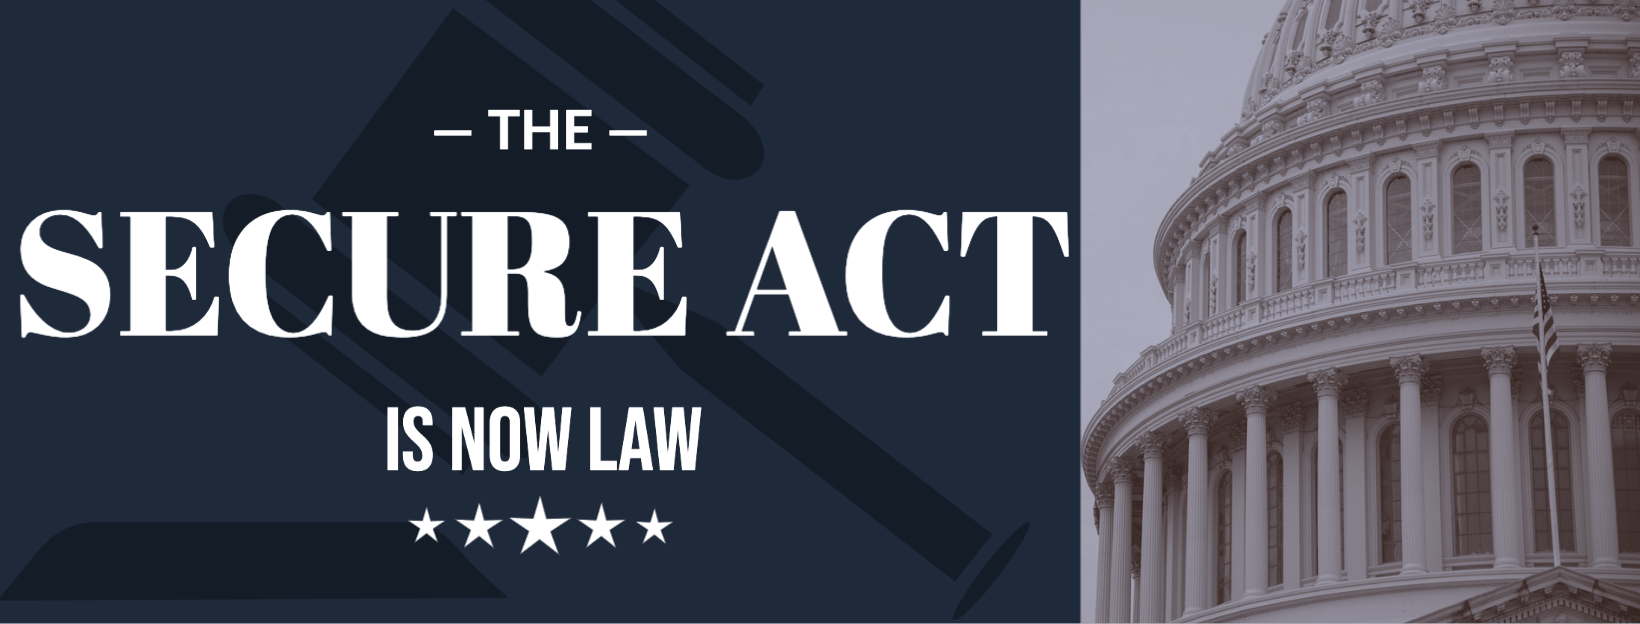 The Secure Act is Now Law